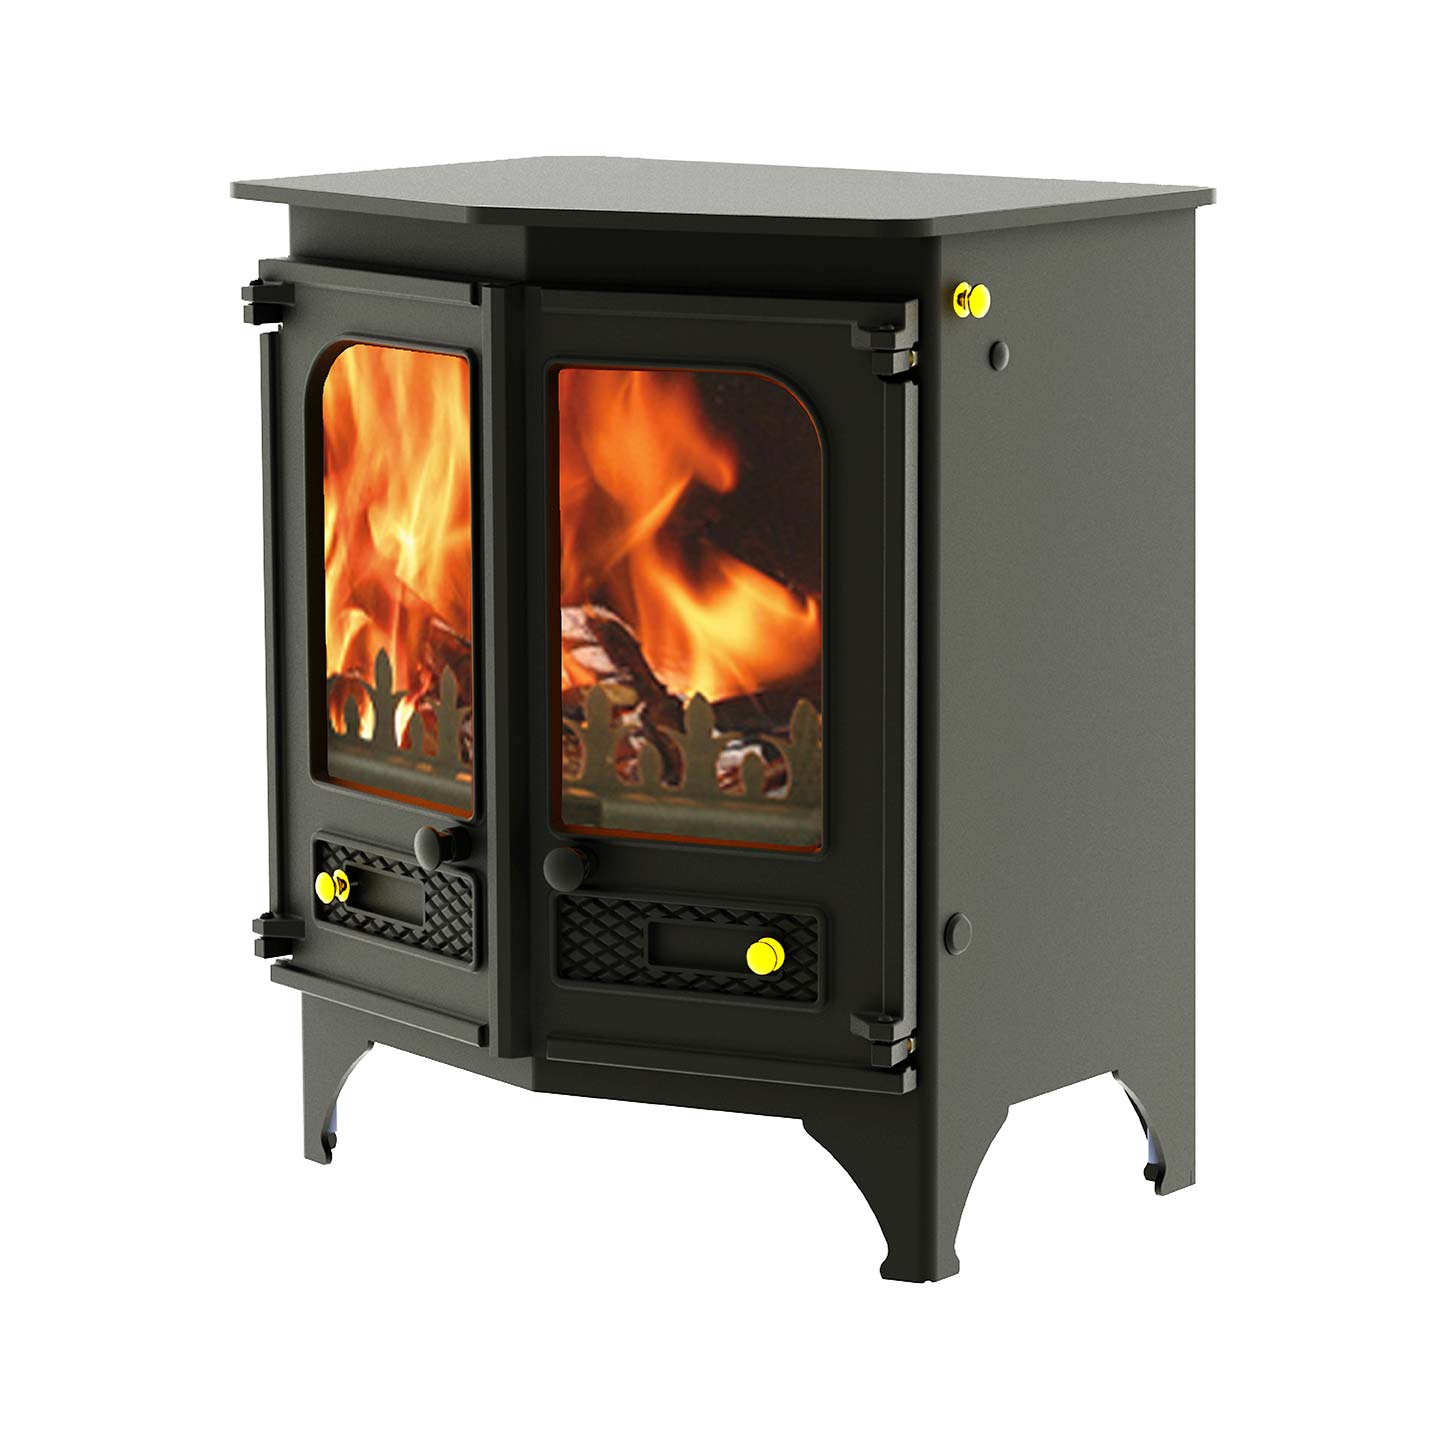 Charnwood Country 6 Wood Burning Stove The Stove Site